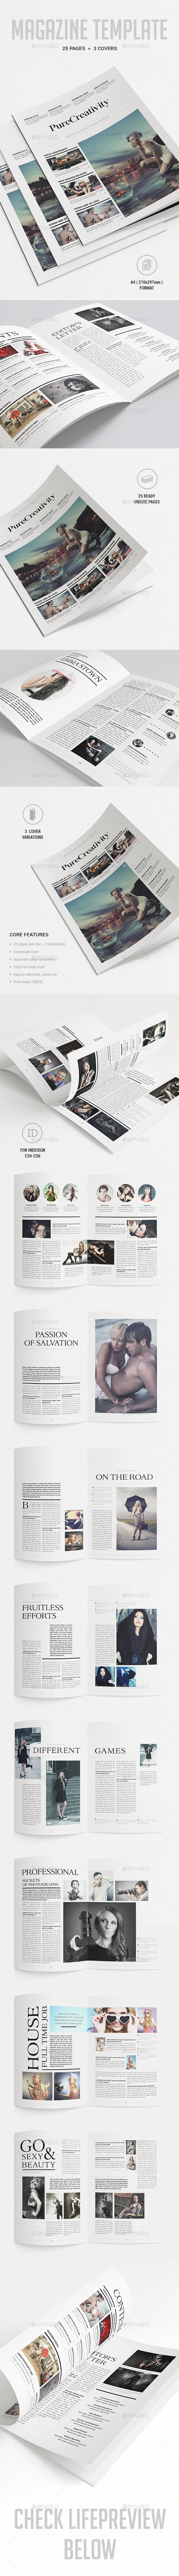 GraphicRiver Magazine Template 9783949